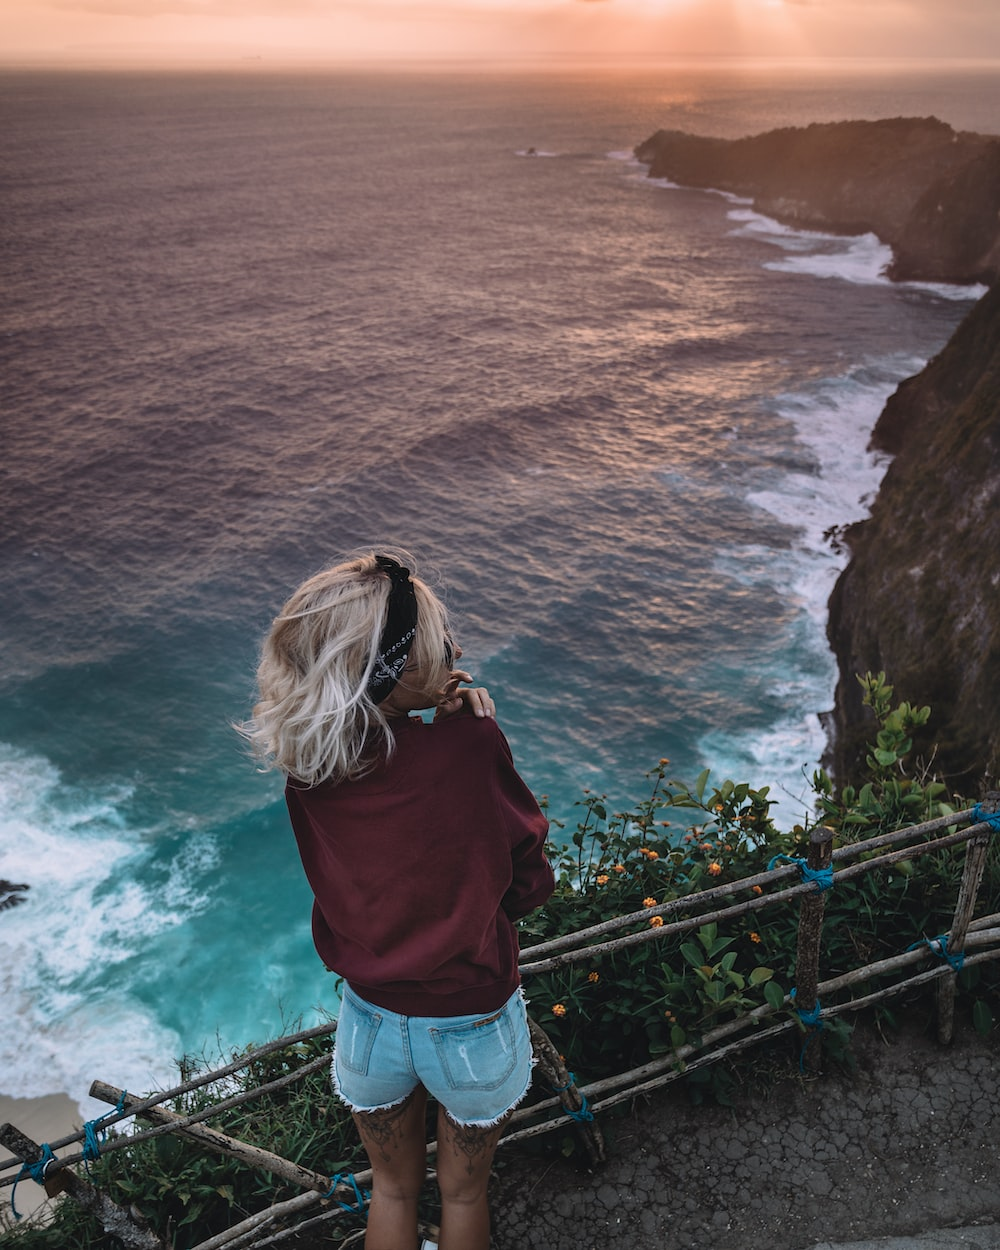 woman standing on cliff near body of water